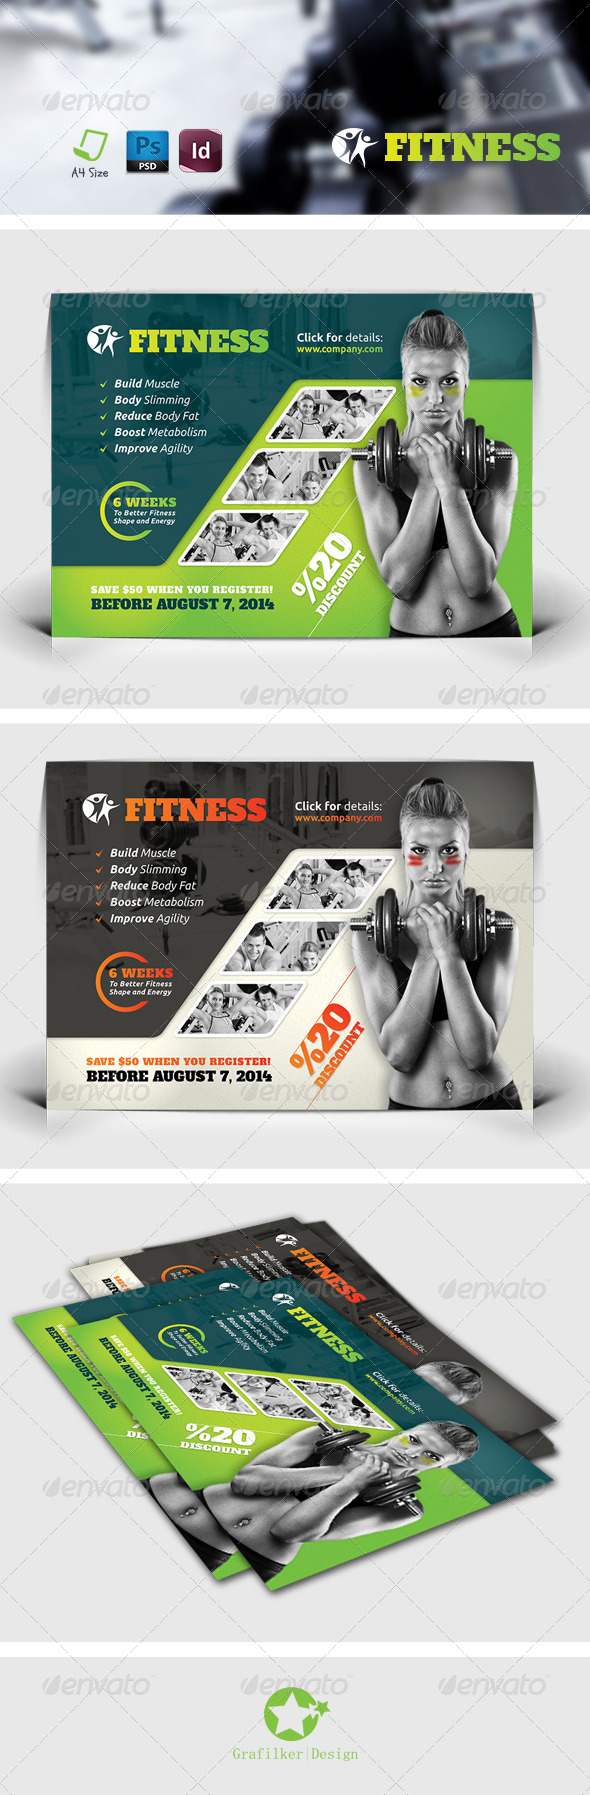 GraphicRiver Fitness Salon Flyer Templates 7577031